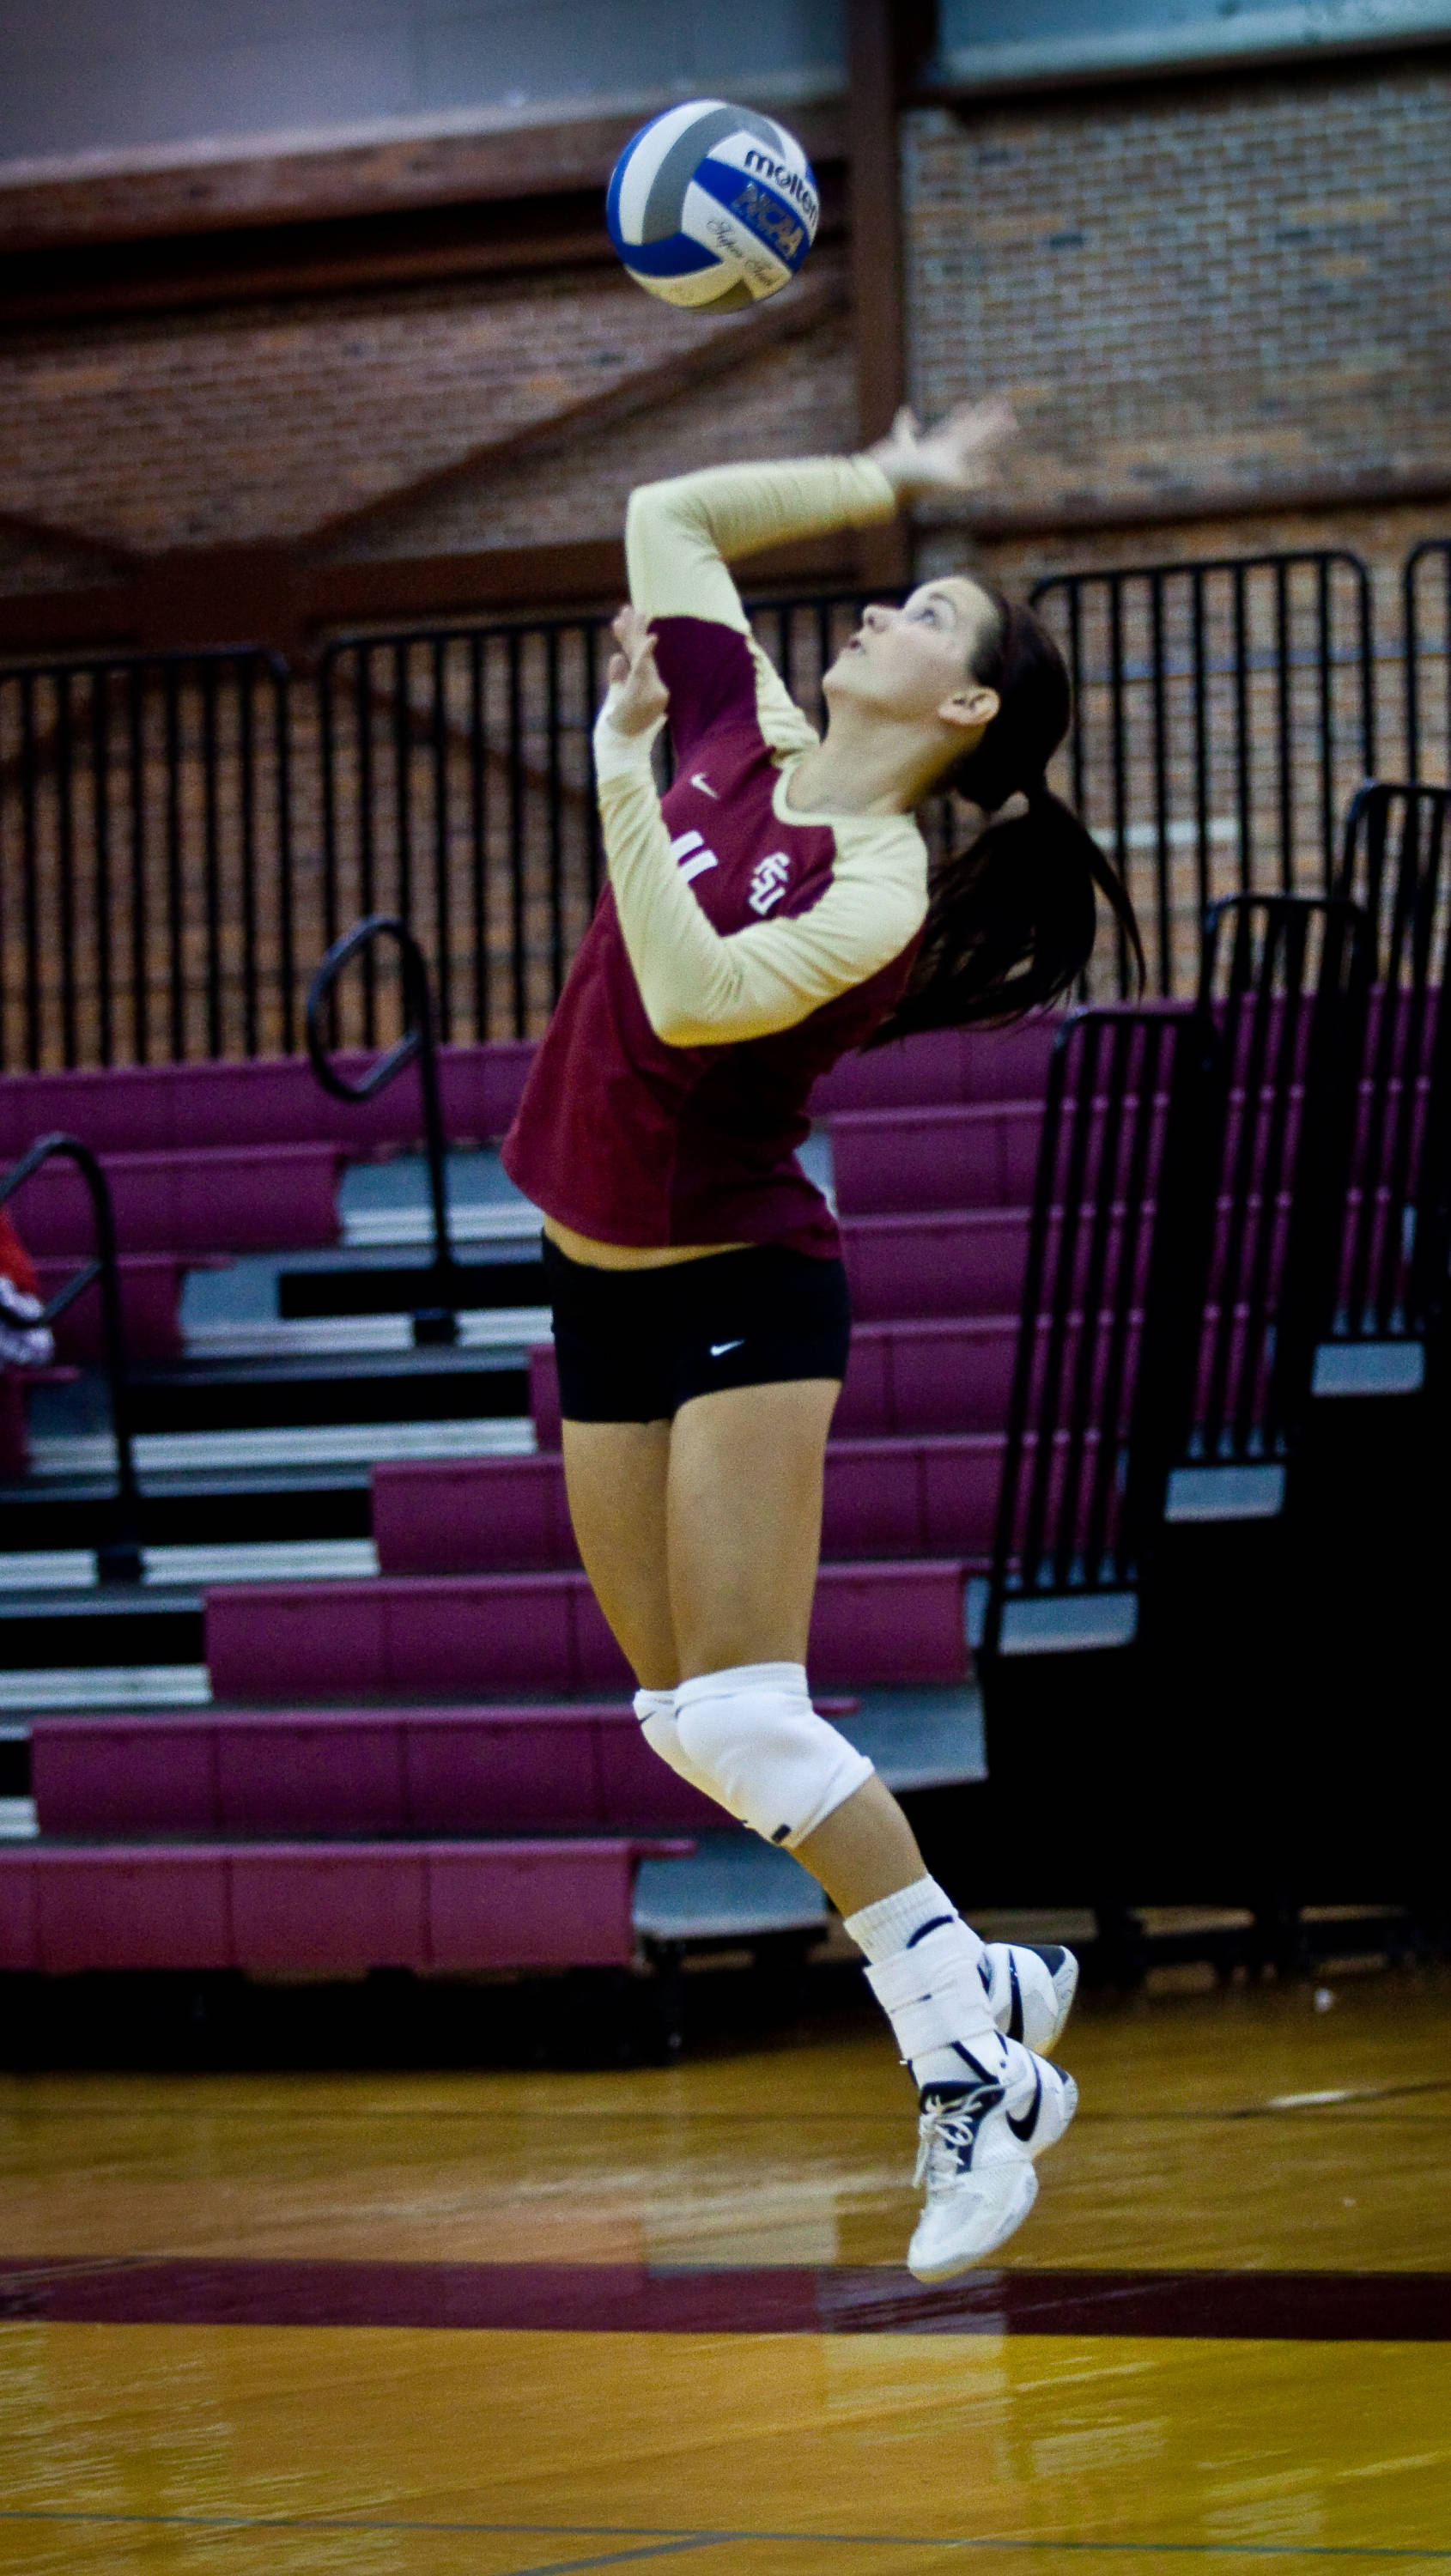 Kalee Schlabach (11) goes up for a serve